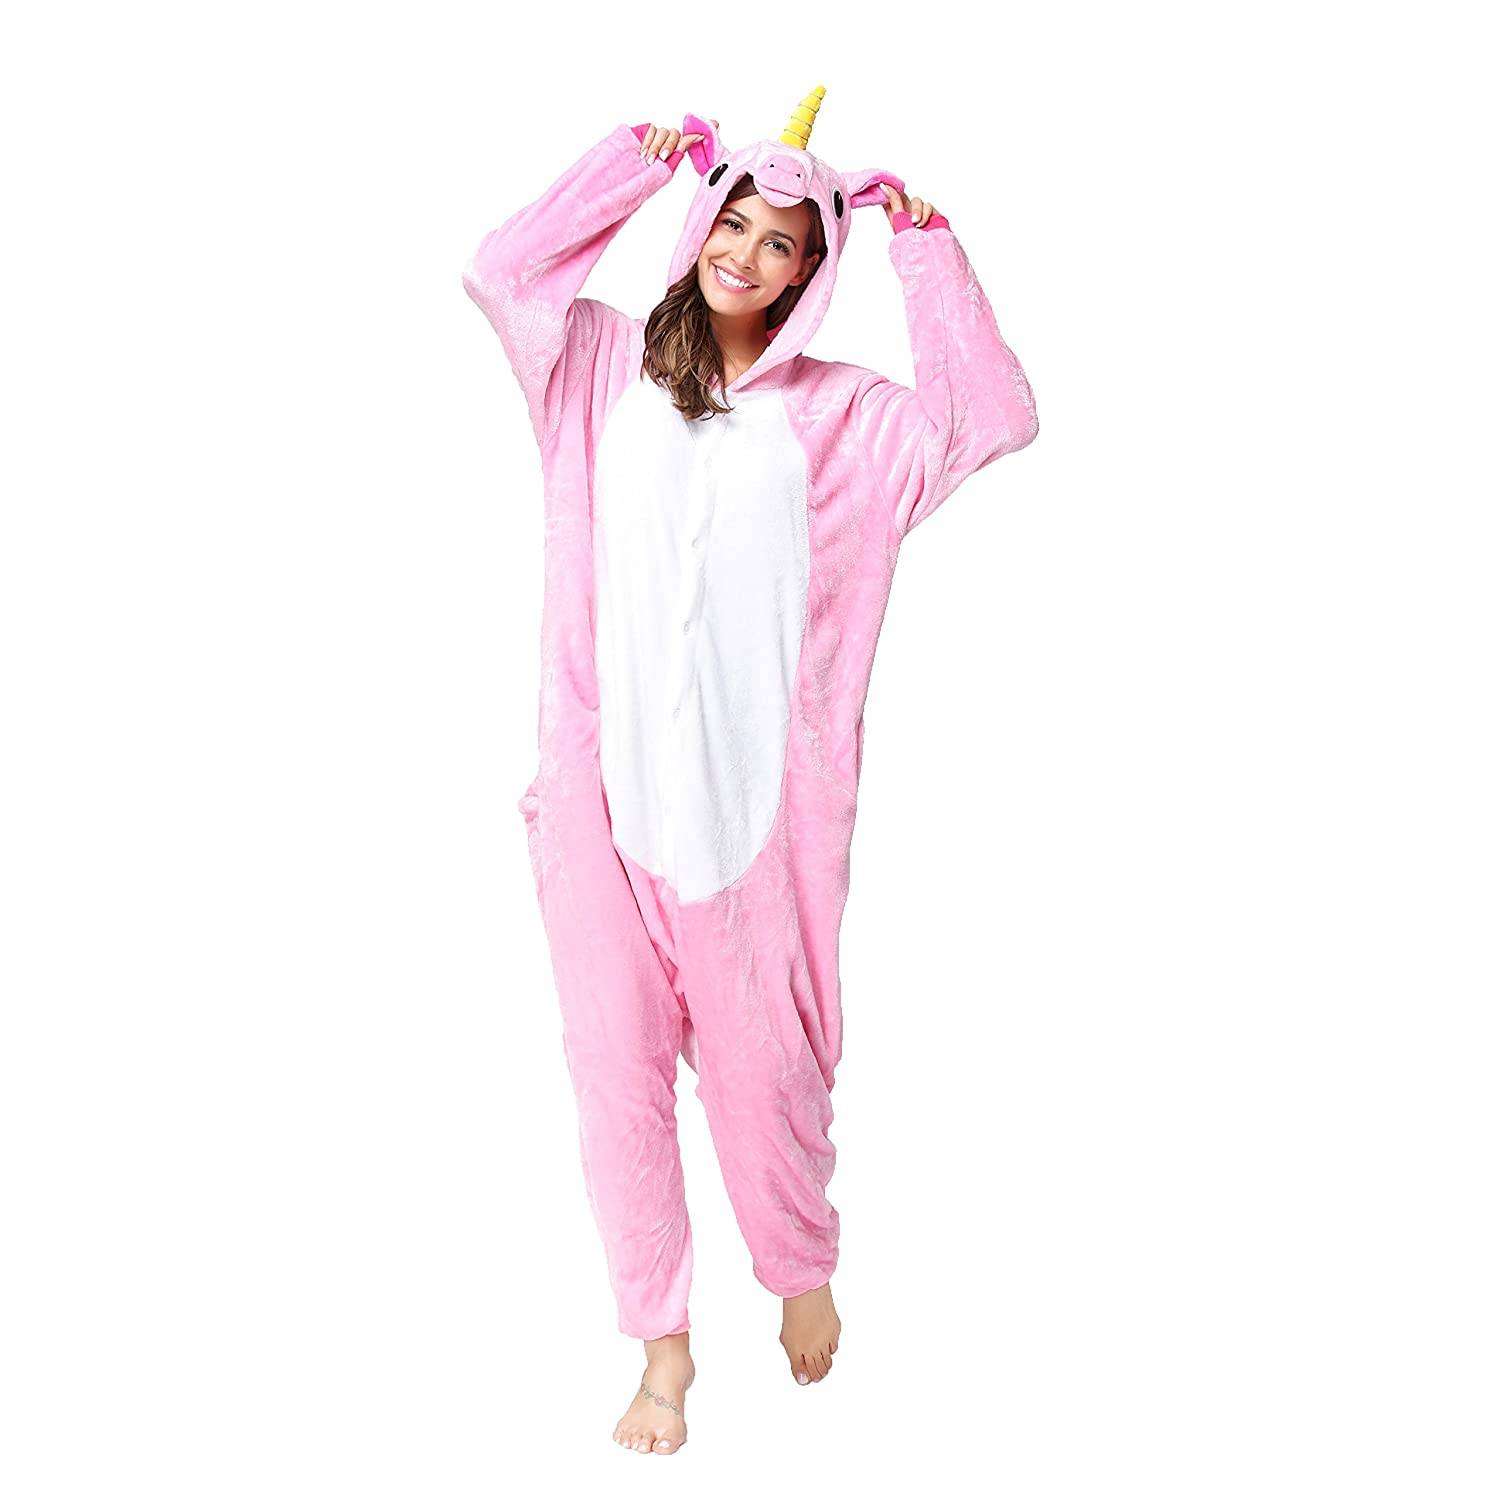 654e03552a50 Made of soft flannel,warm and cosy,animal design looks very vivid. The  front of the pajamas is buttoned and the hips are zippered. Unisex -  suitable for ...